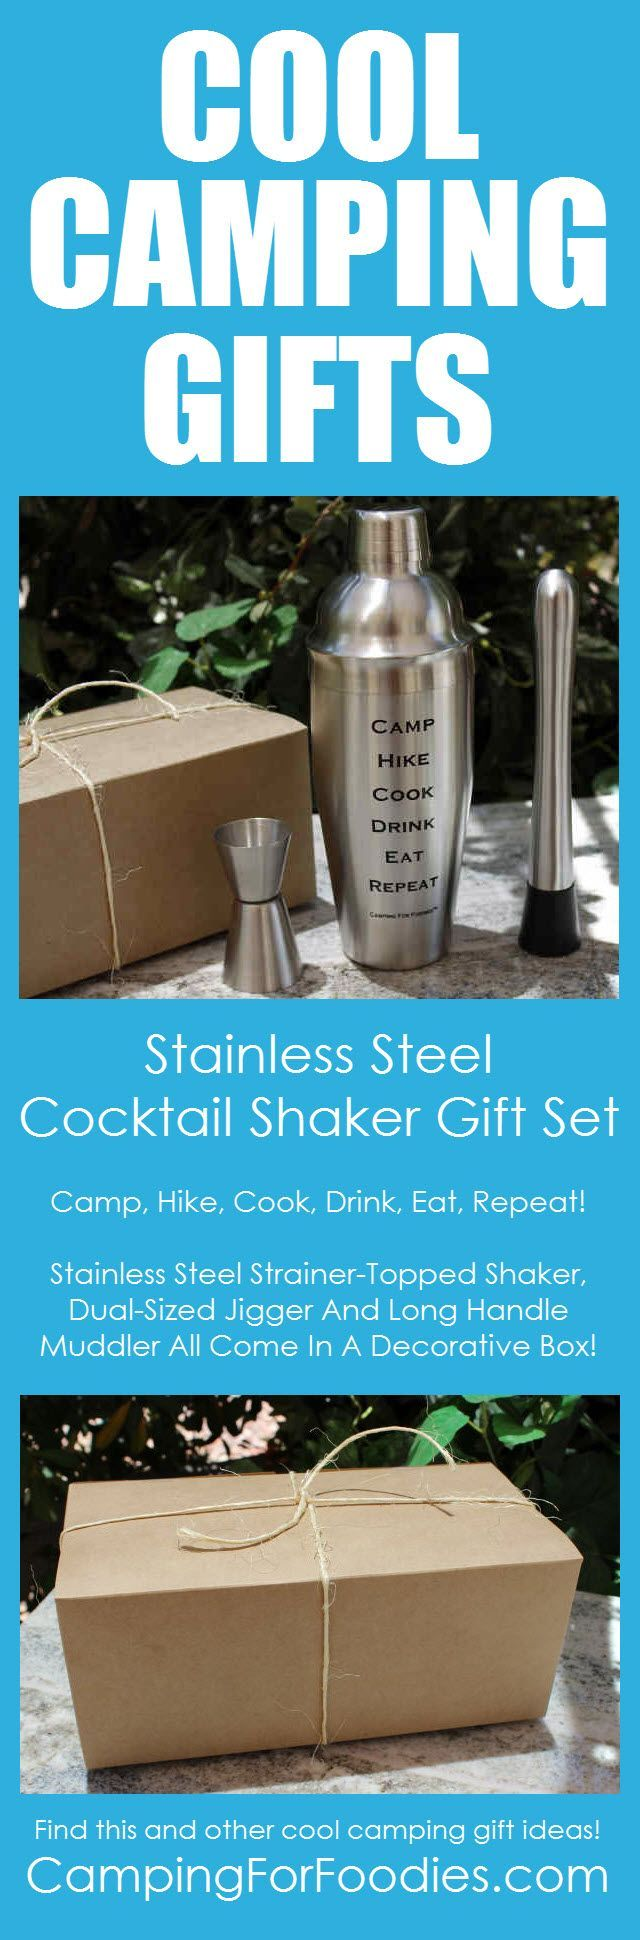 Cool Camping Gifts No Wrapping Necessary This Complete 5 Piece Stainless Steel Martini